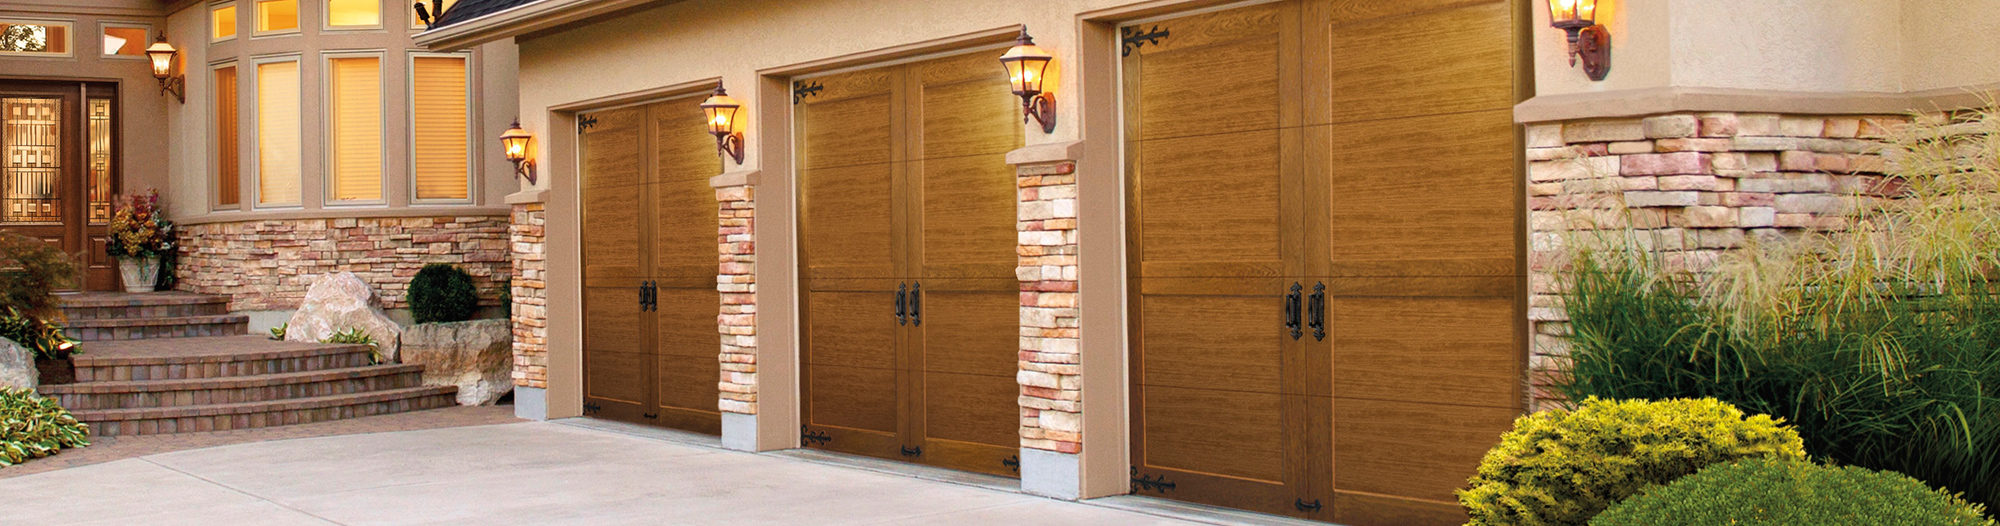 Leading Garage Door Service and Installation Center